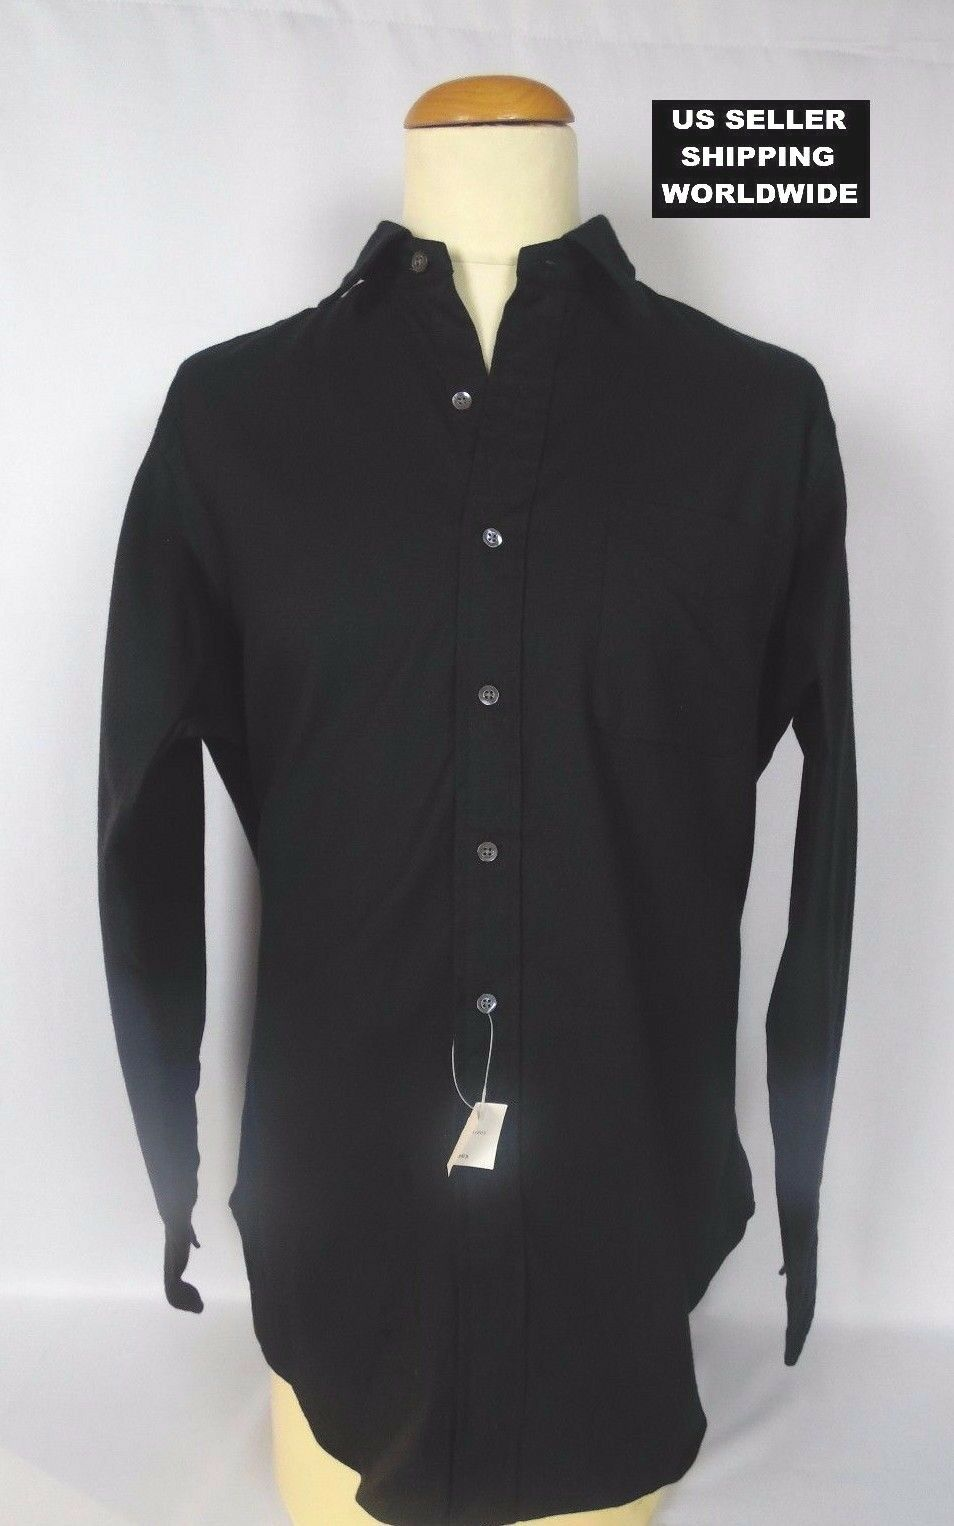 225.00 Polo by RALPH LAUREN Large Black Cashmere Blend Dress Shirt MakeAnOffer